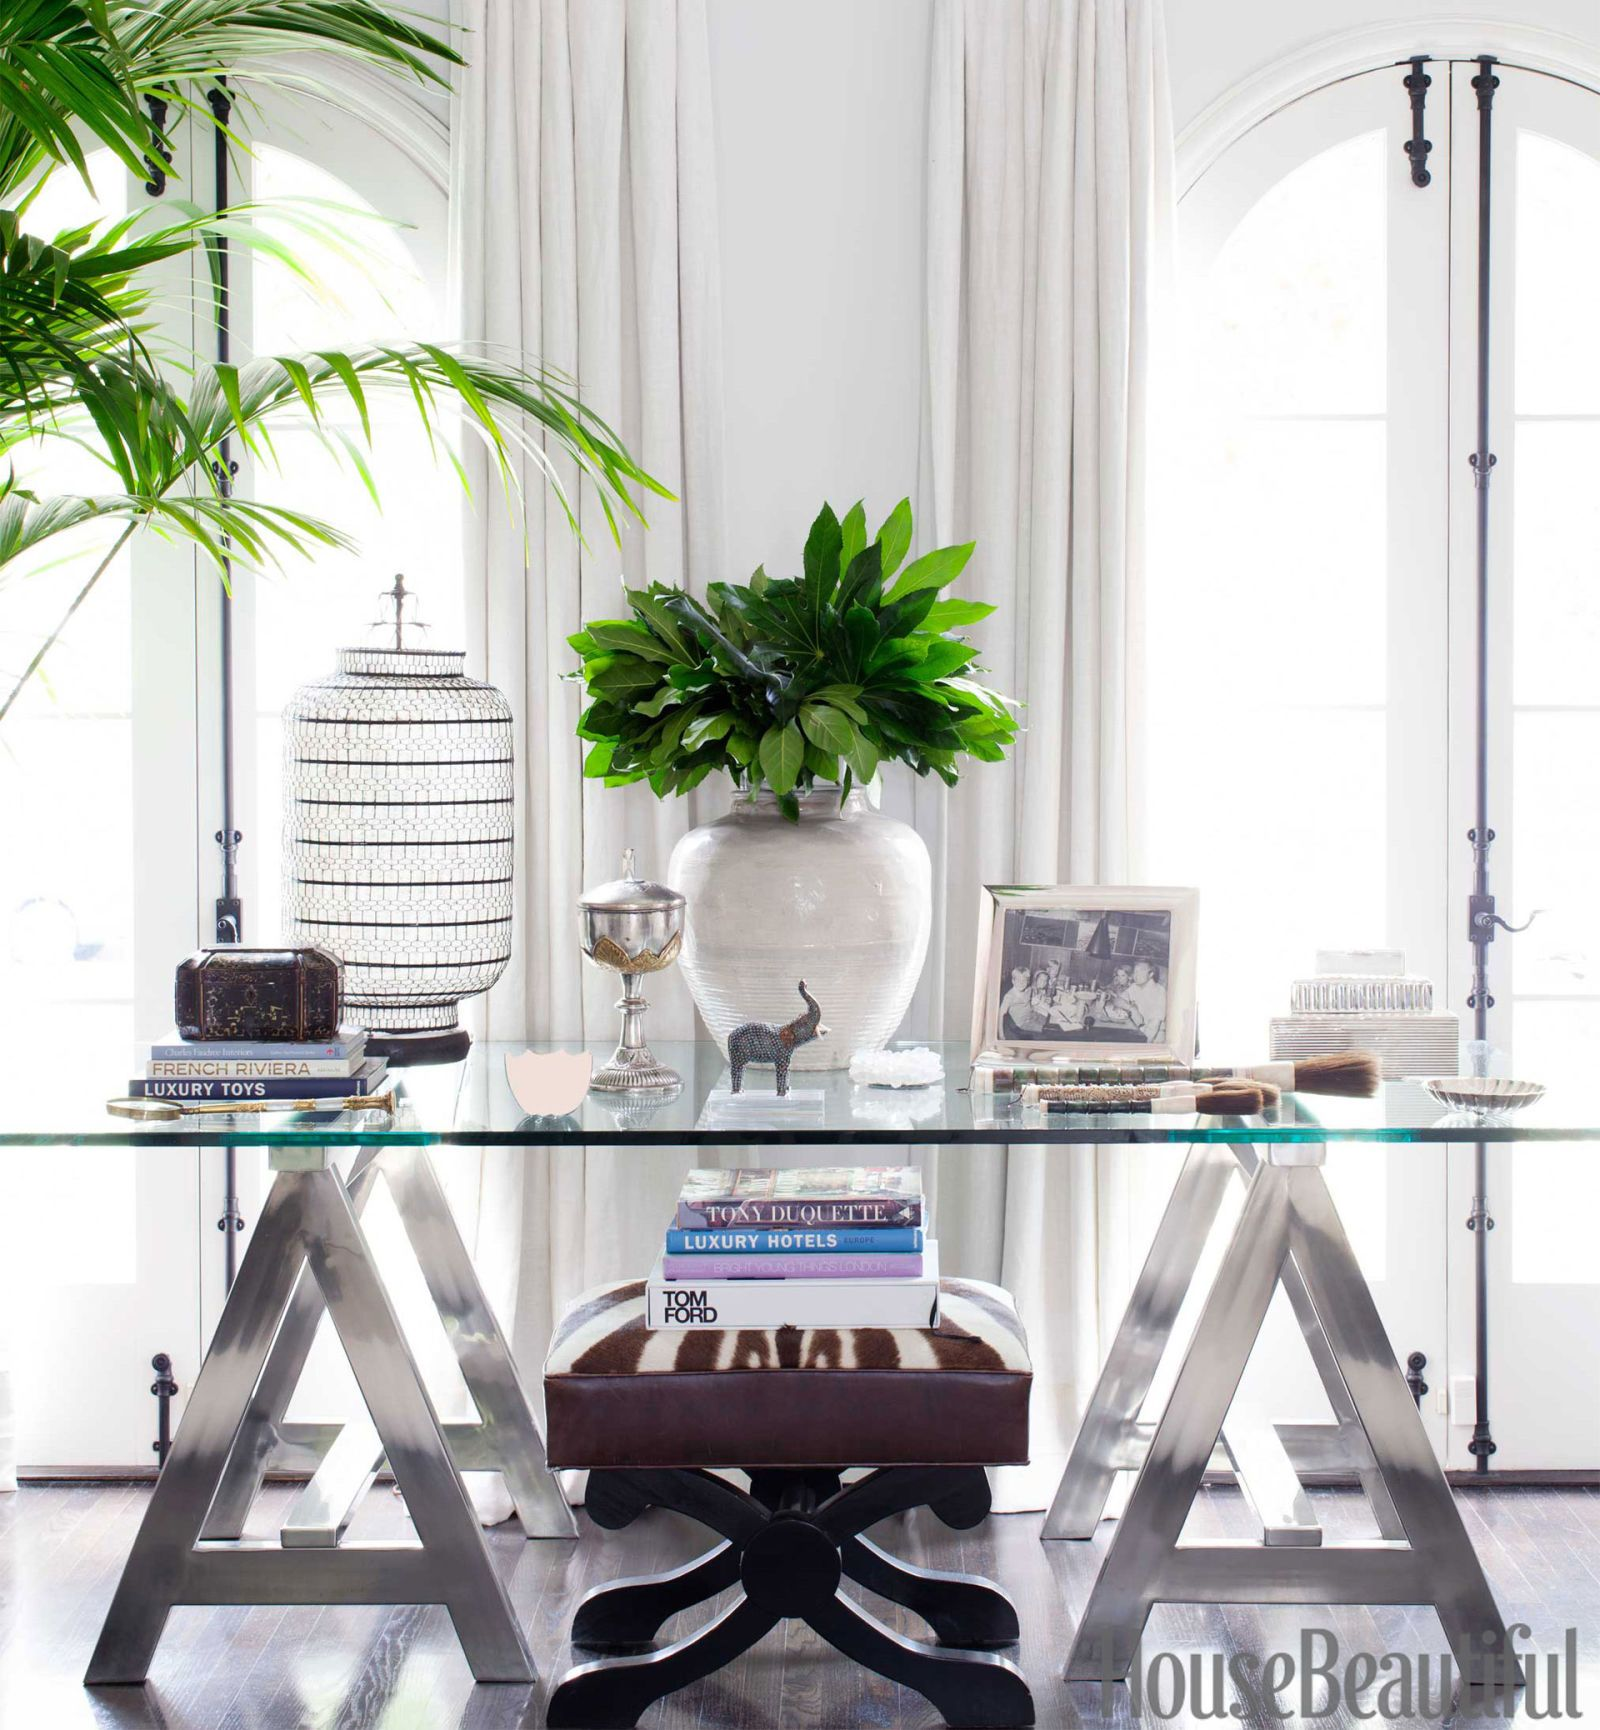 A California-style tableau in the light-filled living room: A chrome-and-glass sawhorse table by Ralph Lauren Home holds collected objects, including an antique white vase from Oriental Treasures; the bench is by Jan Showers. - HouseBeautiful.com